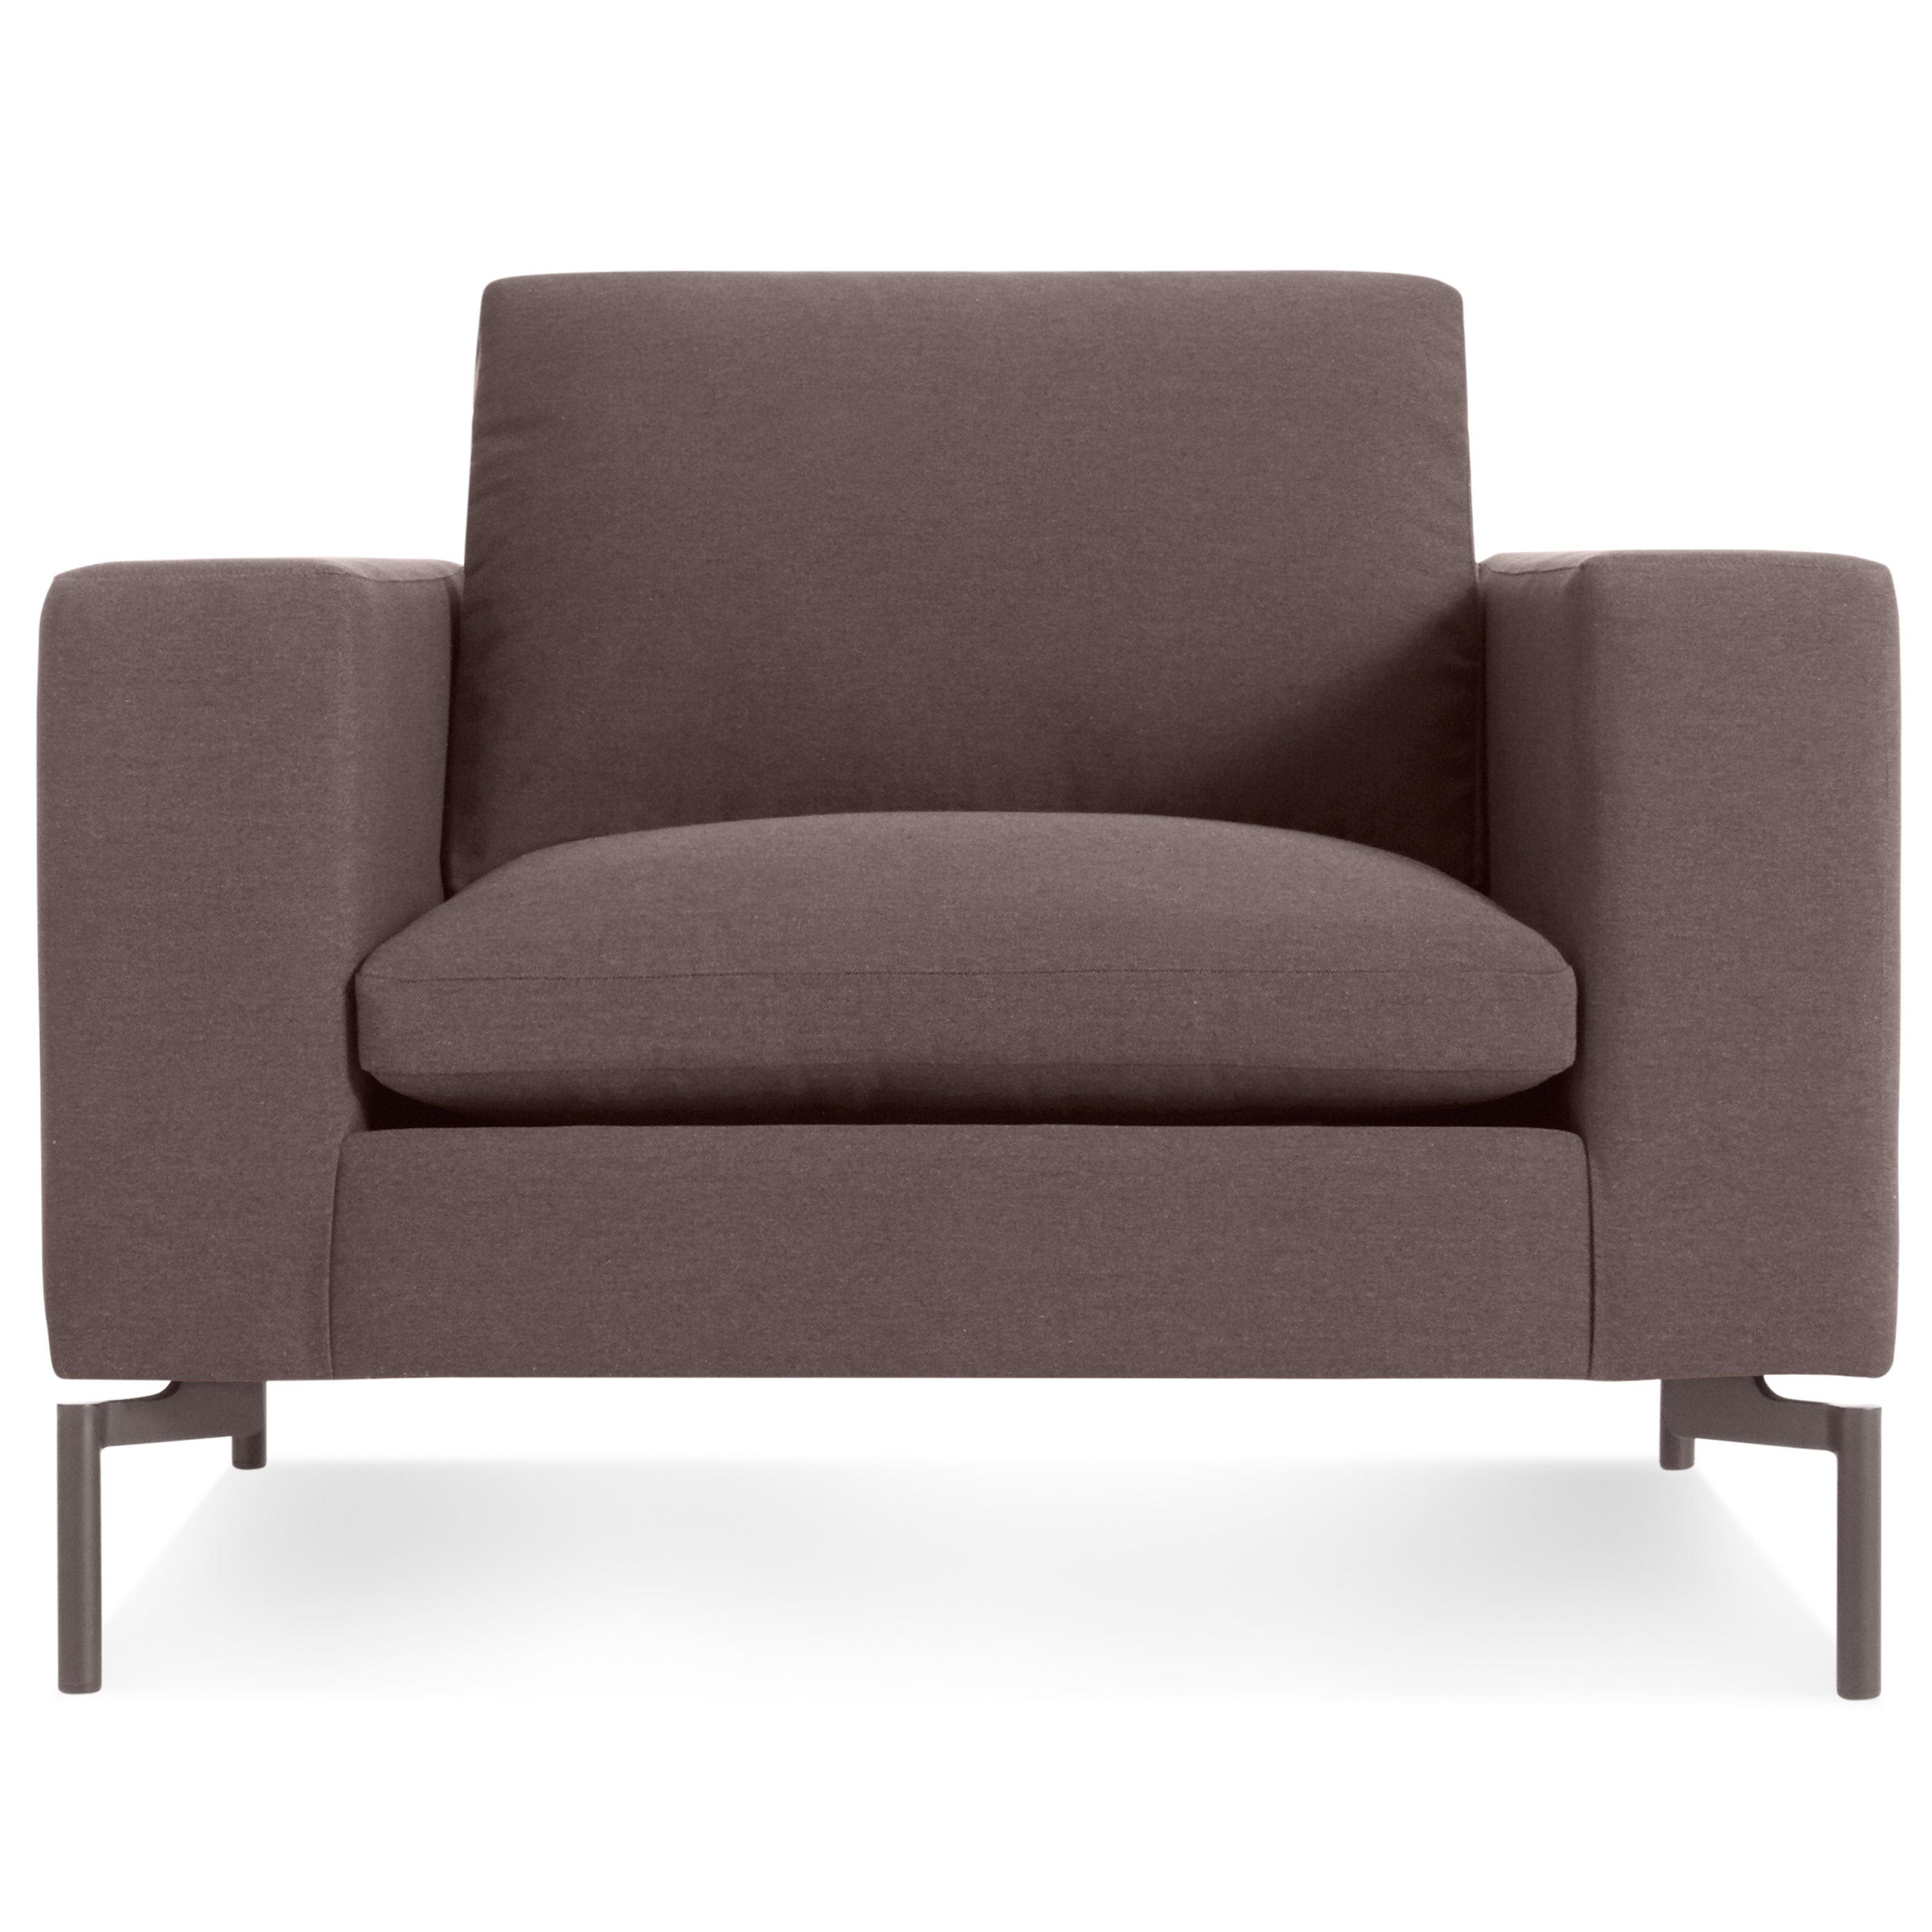 Previous Image New Standard Lounge Chair   Nixon Dusk / Plum ...